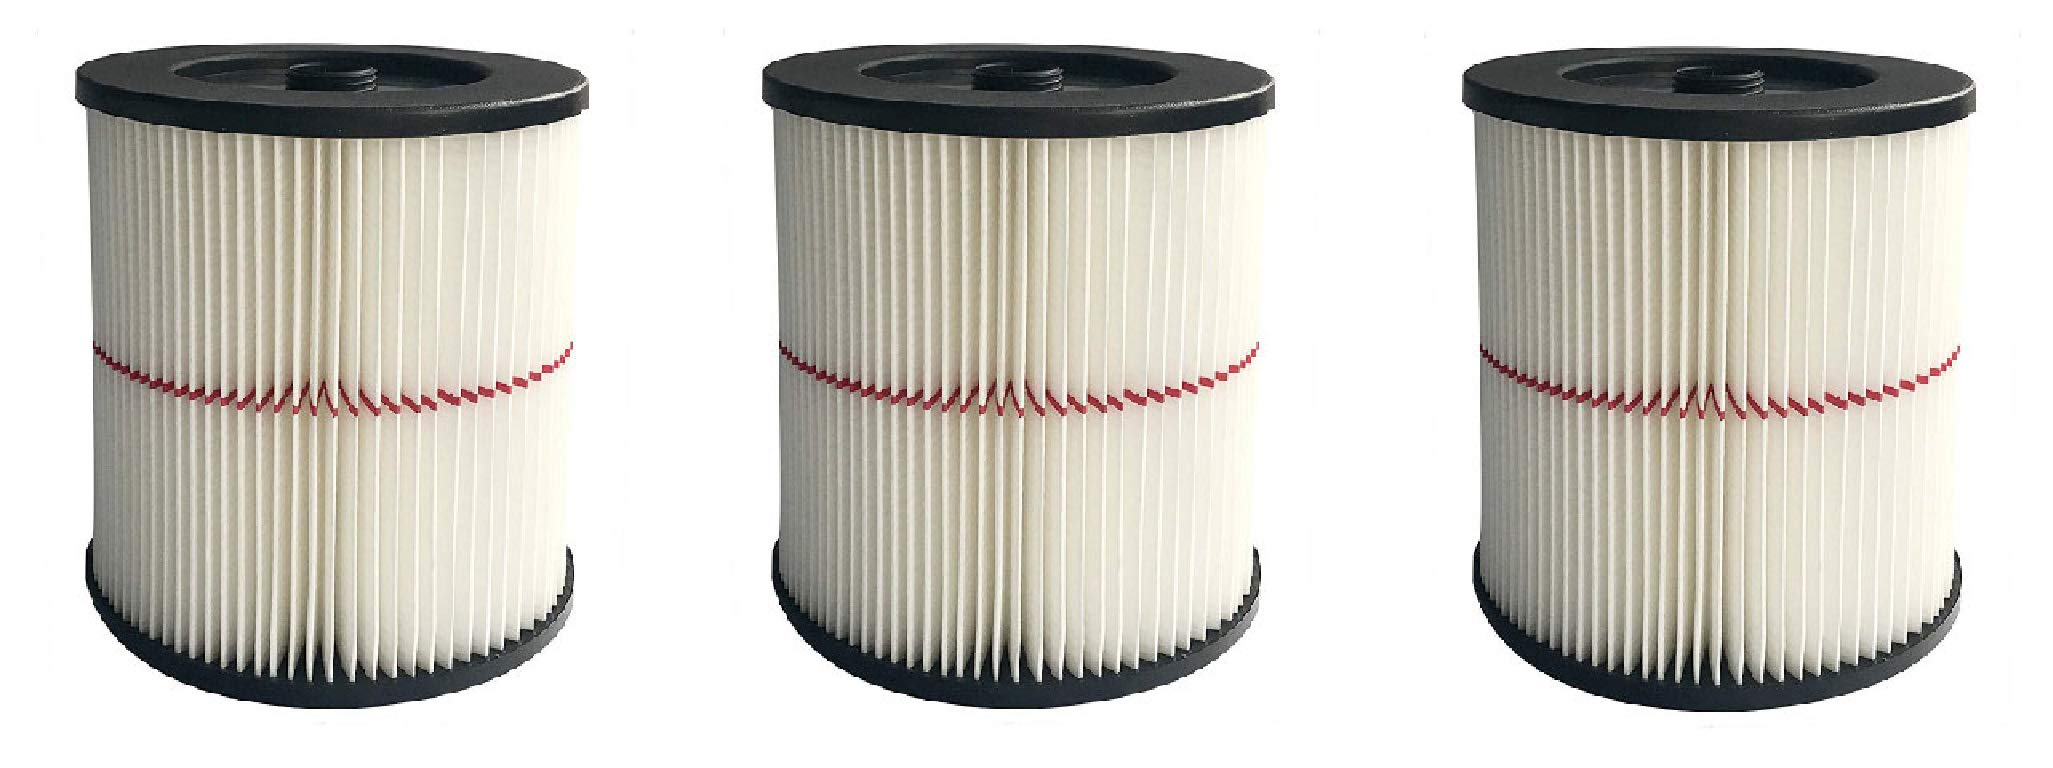 Nispira Replacement HEPA Filter Compatible with Craftsman Wet/Dry Vacs Vacuum. Compared to Part 9-17816. 3 Filters